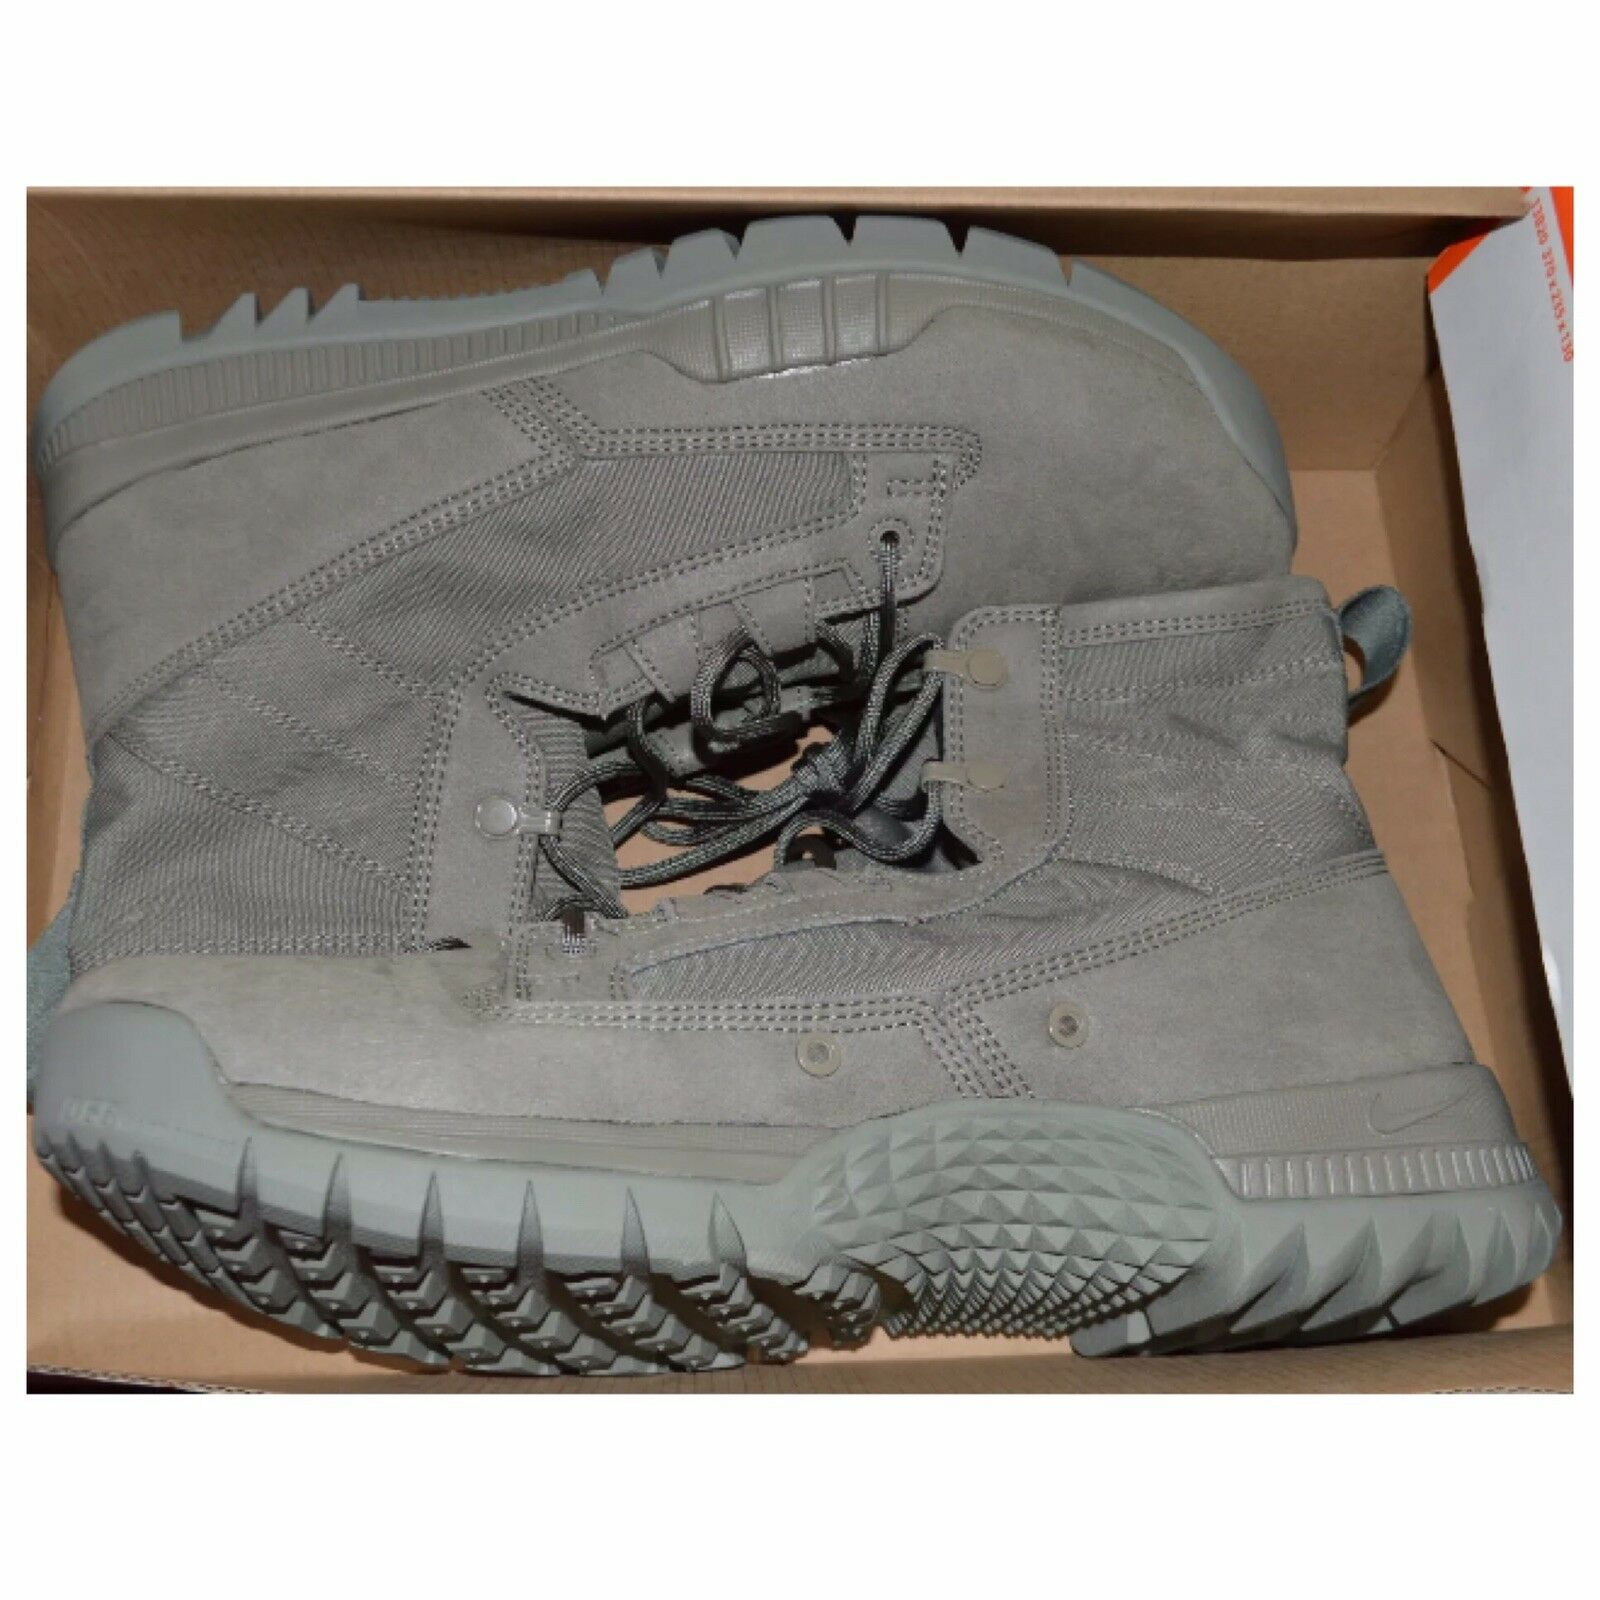 New Nike Mens SFB 6 Special Field Boot Boots 631360-220 sz 9 Sage Green